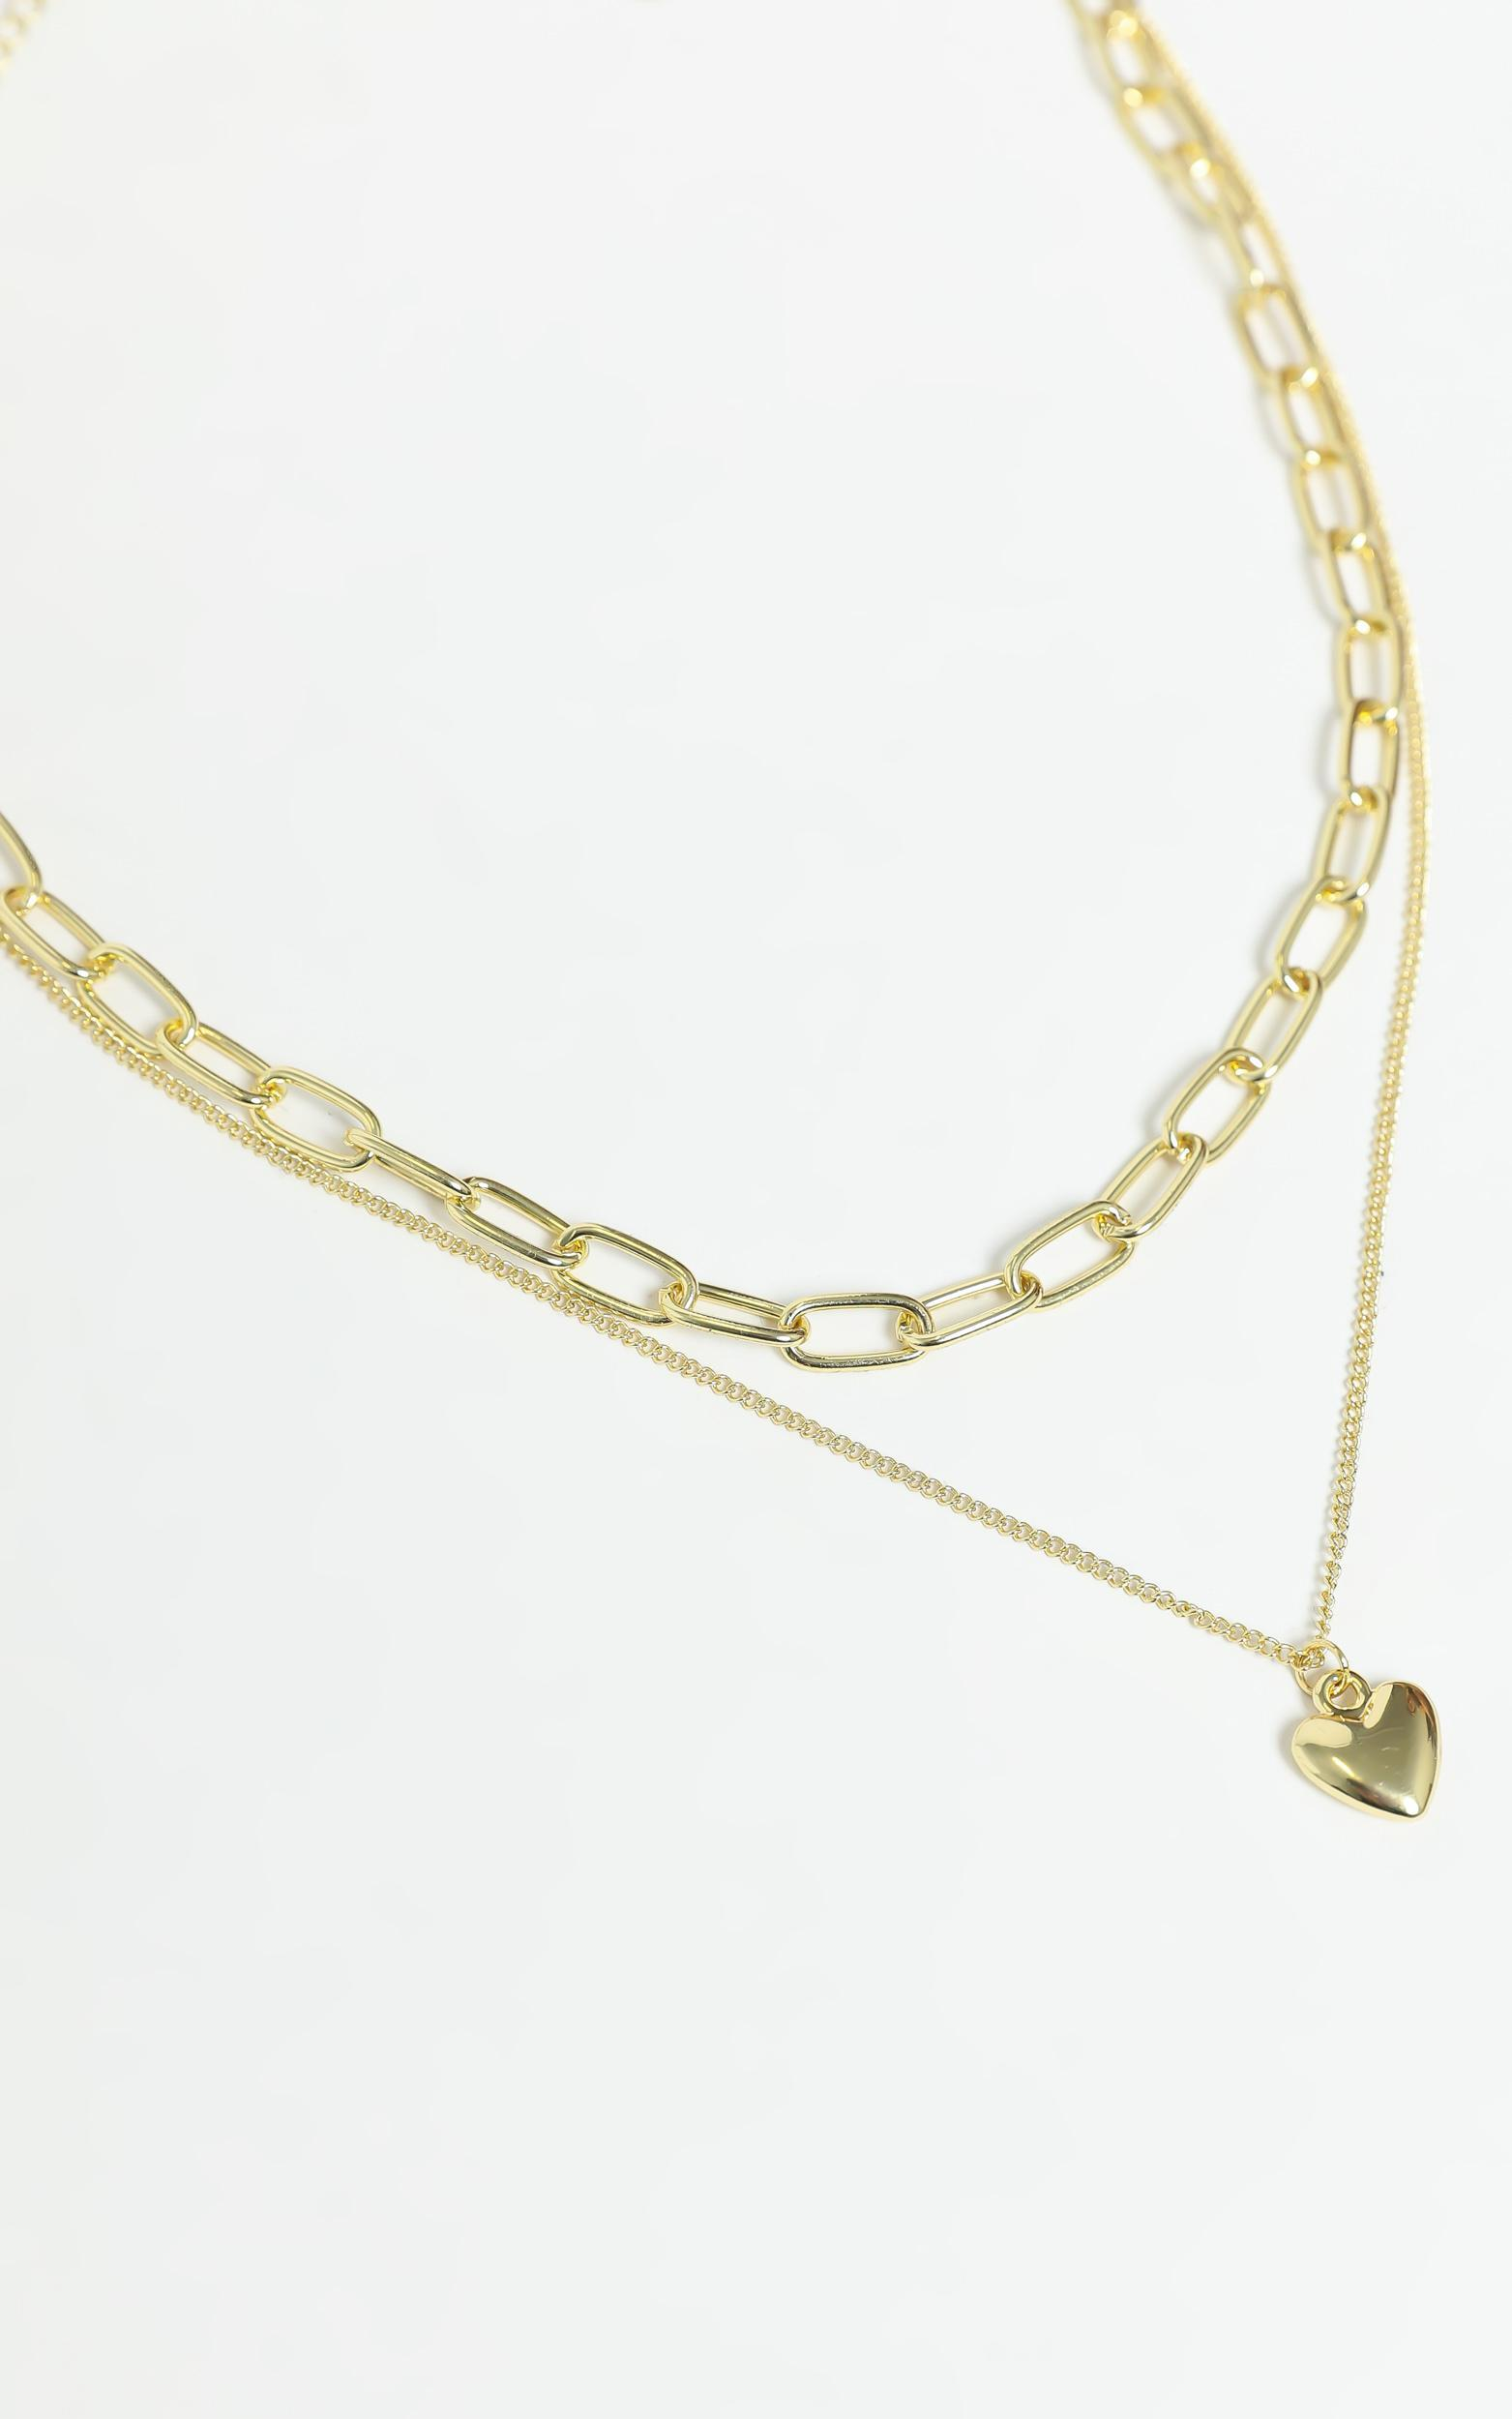 Heart Pendant Necklace in Gold, , hi-res image number null